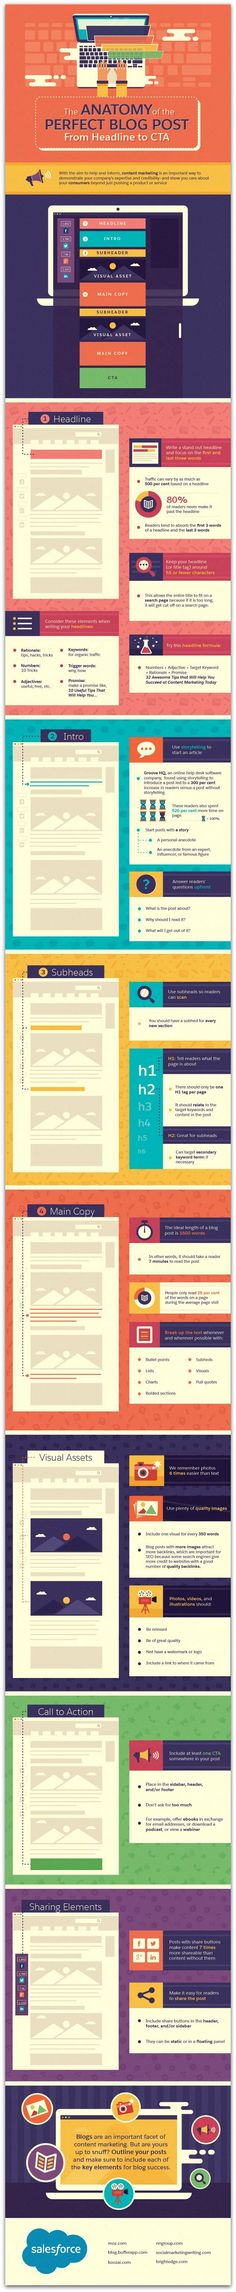 Infographic: How to write a perfect blog post | Articles | Main